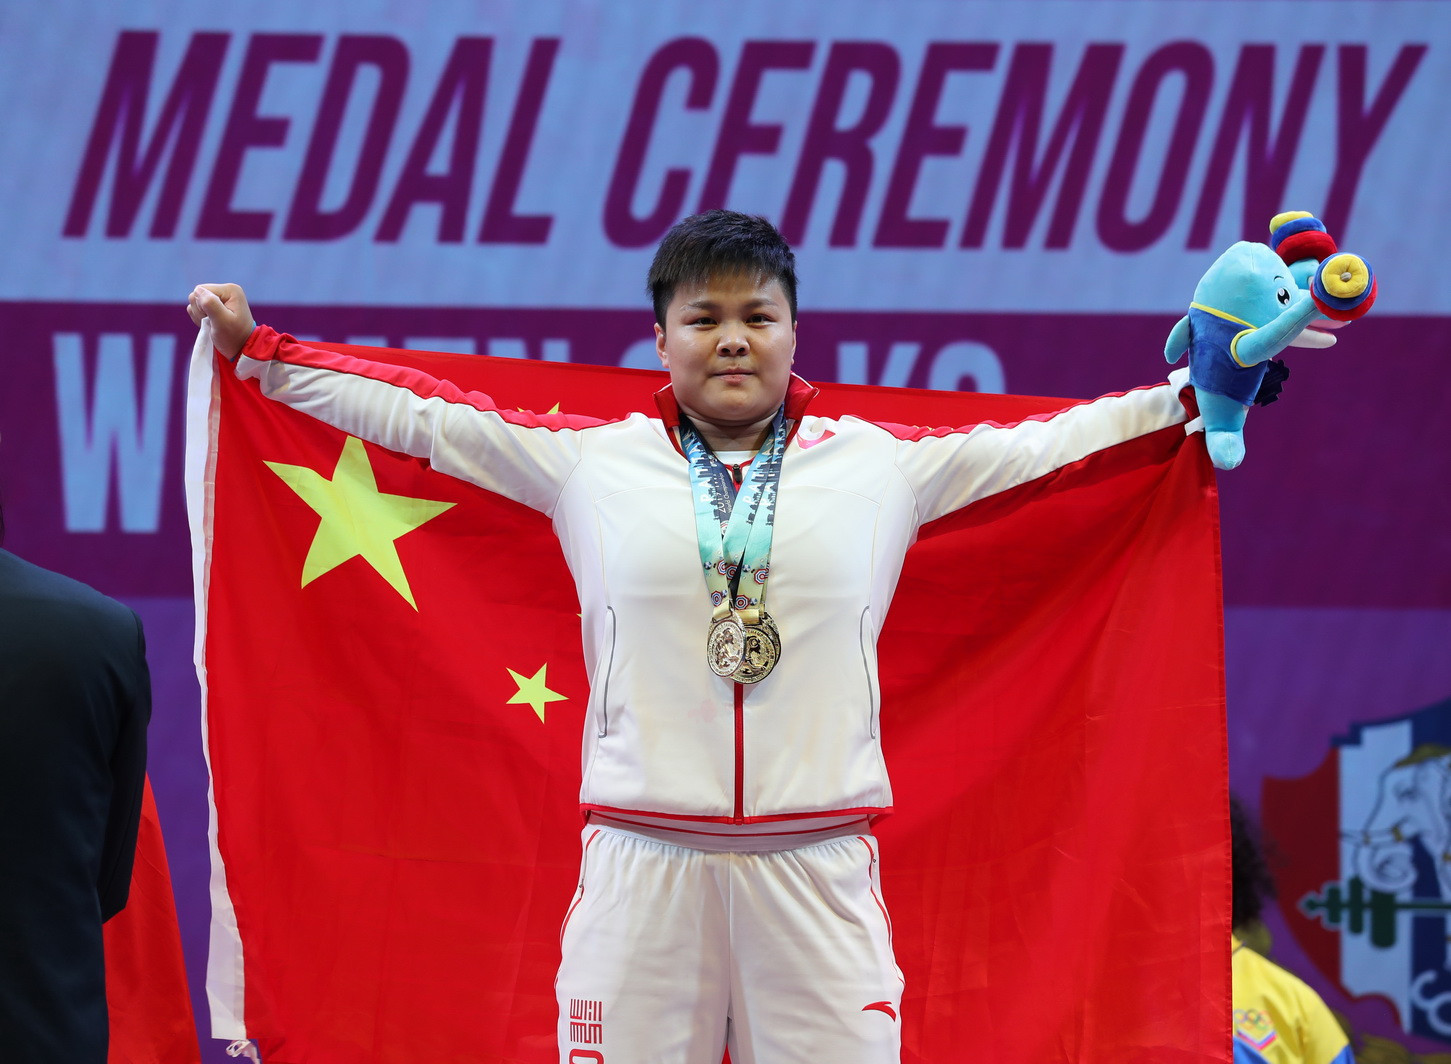 China's Wang Zhouyu claimed a hat-trick of gold medals in the women's 87kg event ©IWF